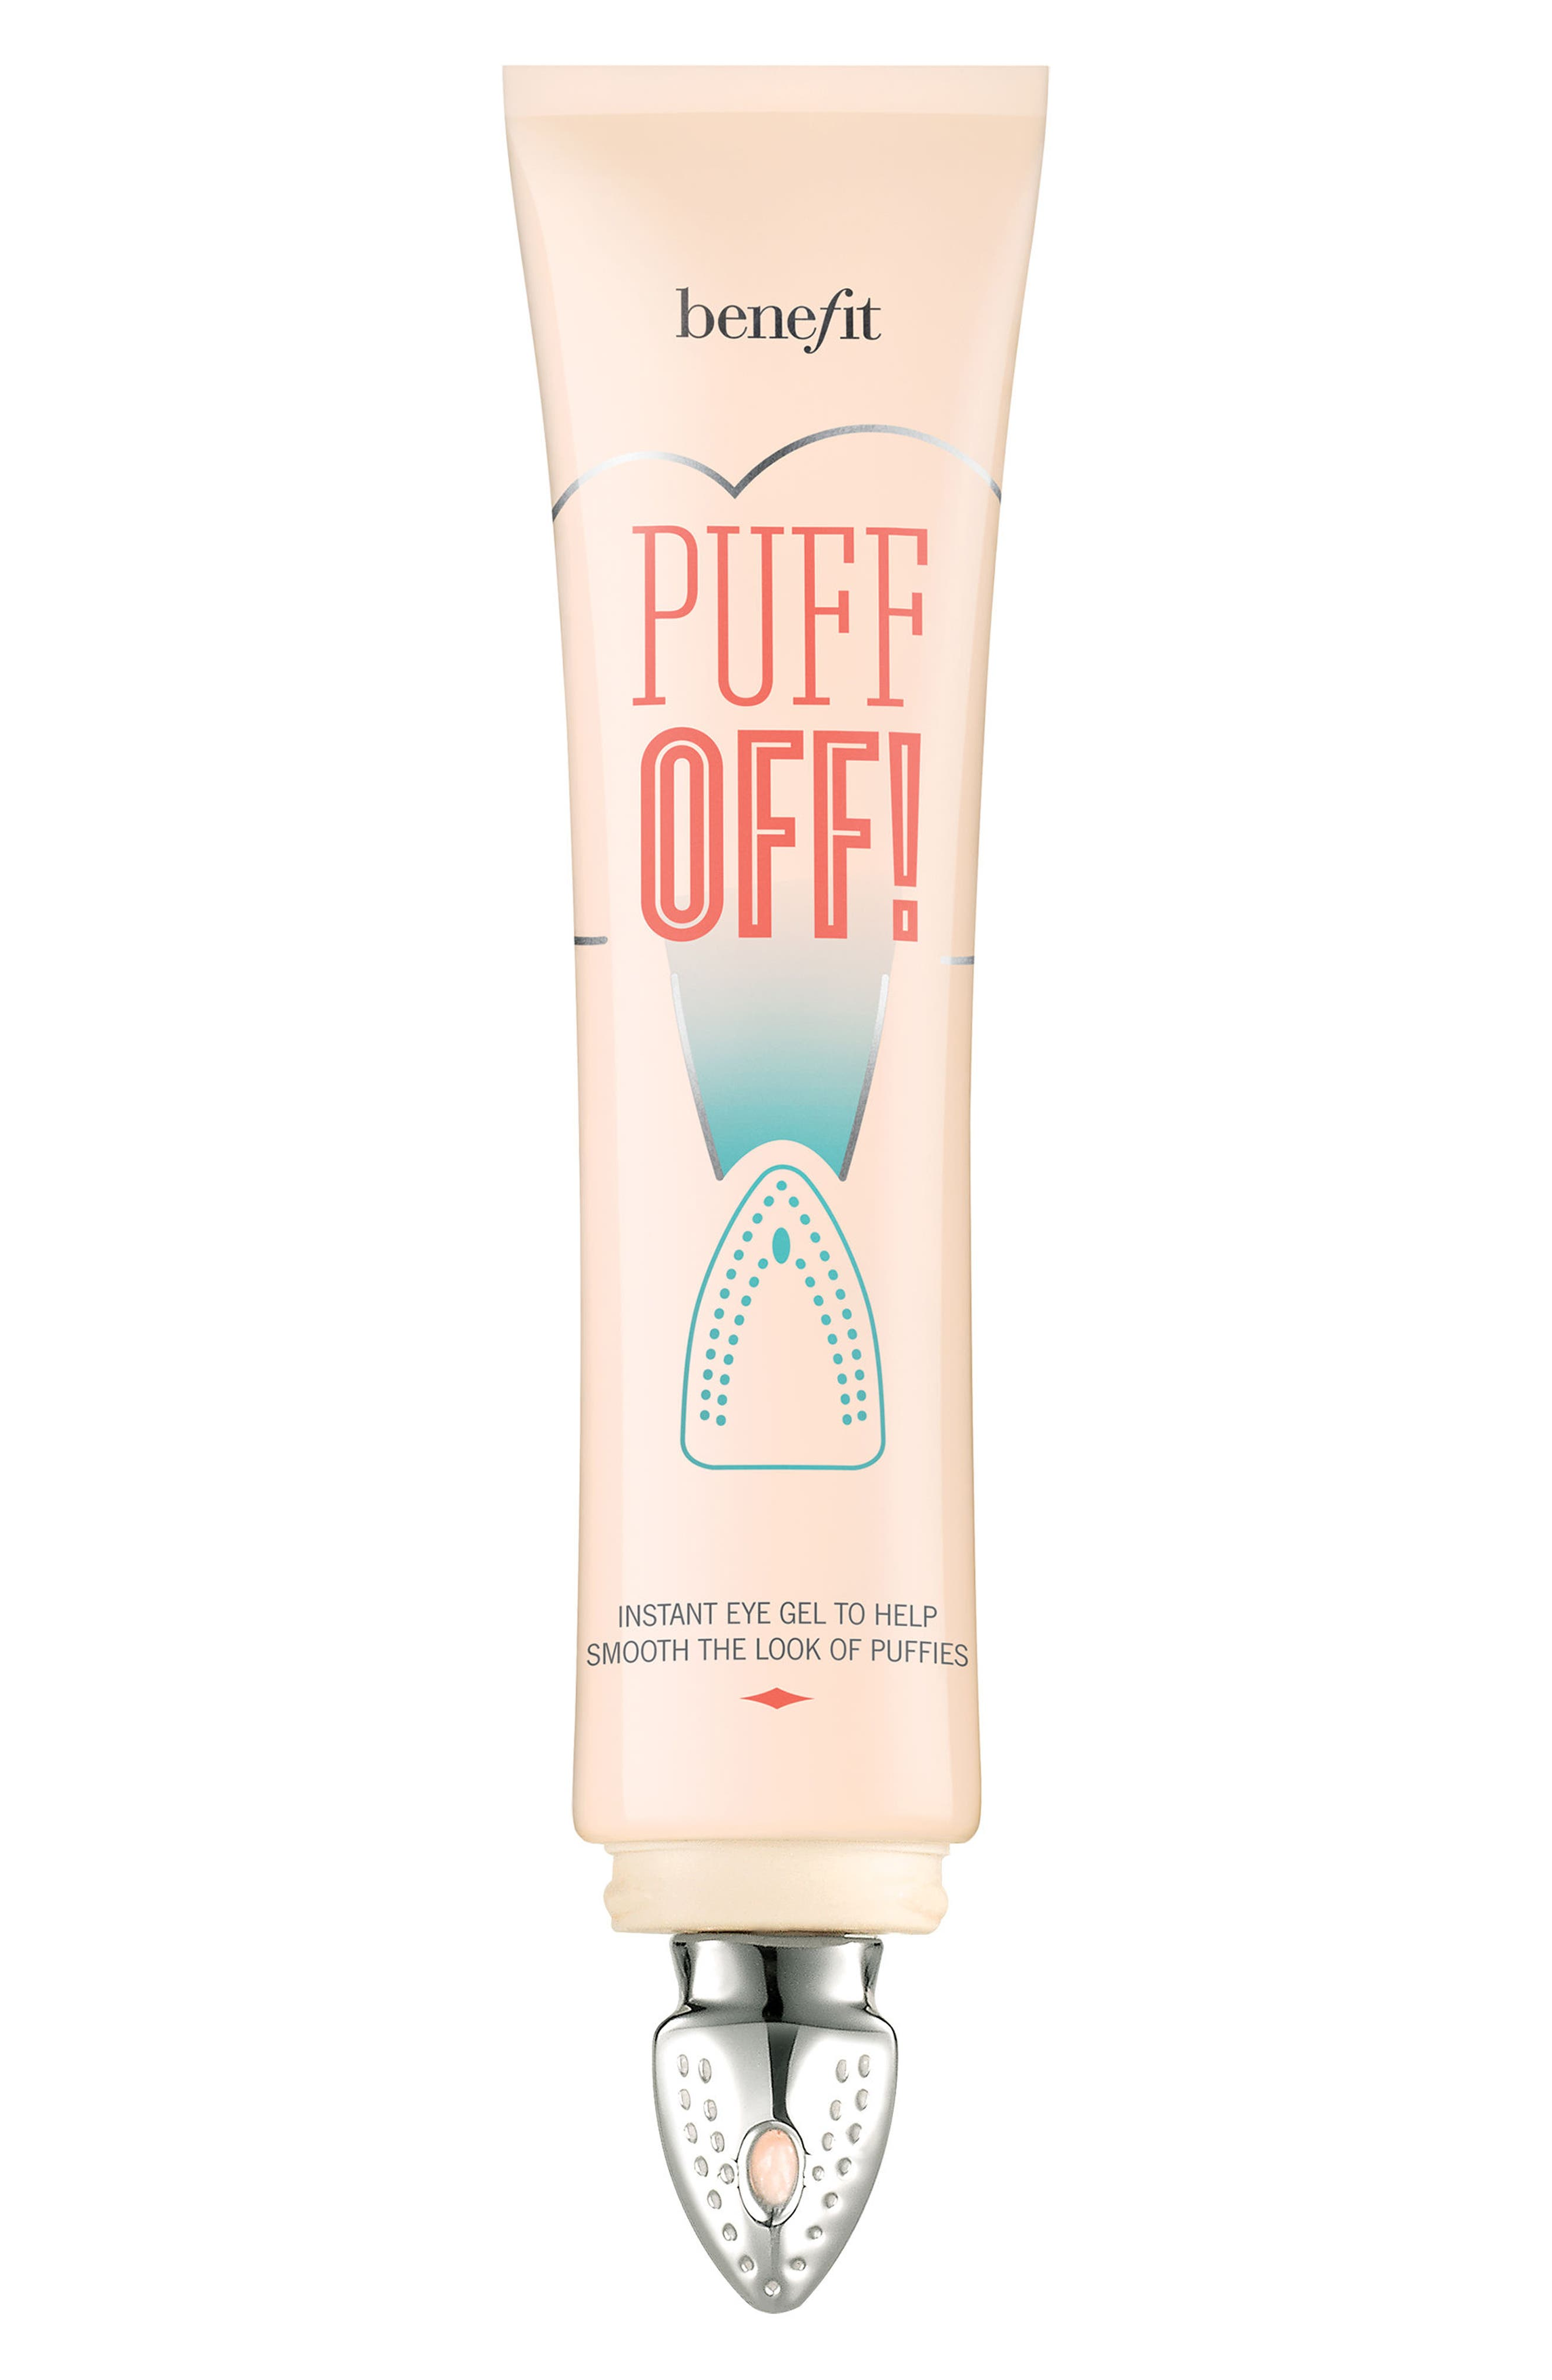 Benefit Puff Off! Under Eye Gel,                             Main thumbnail 1, color,                             No Color